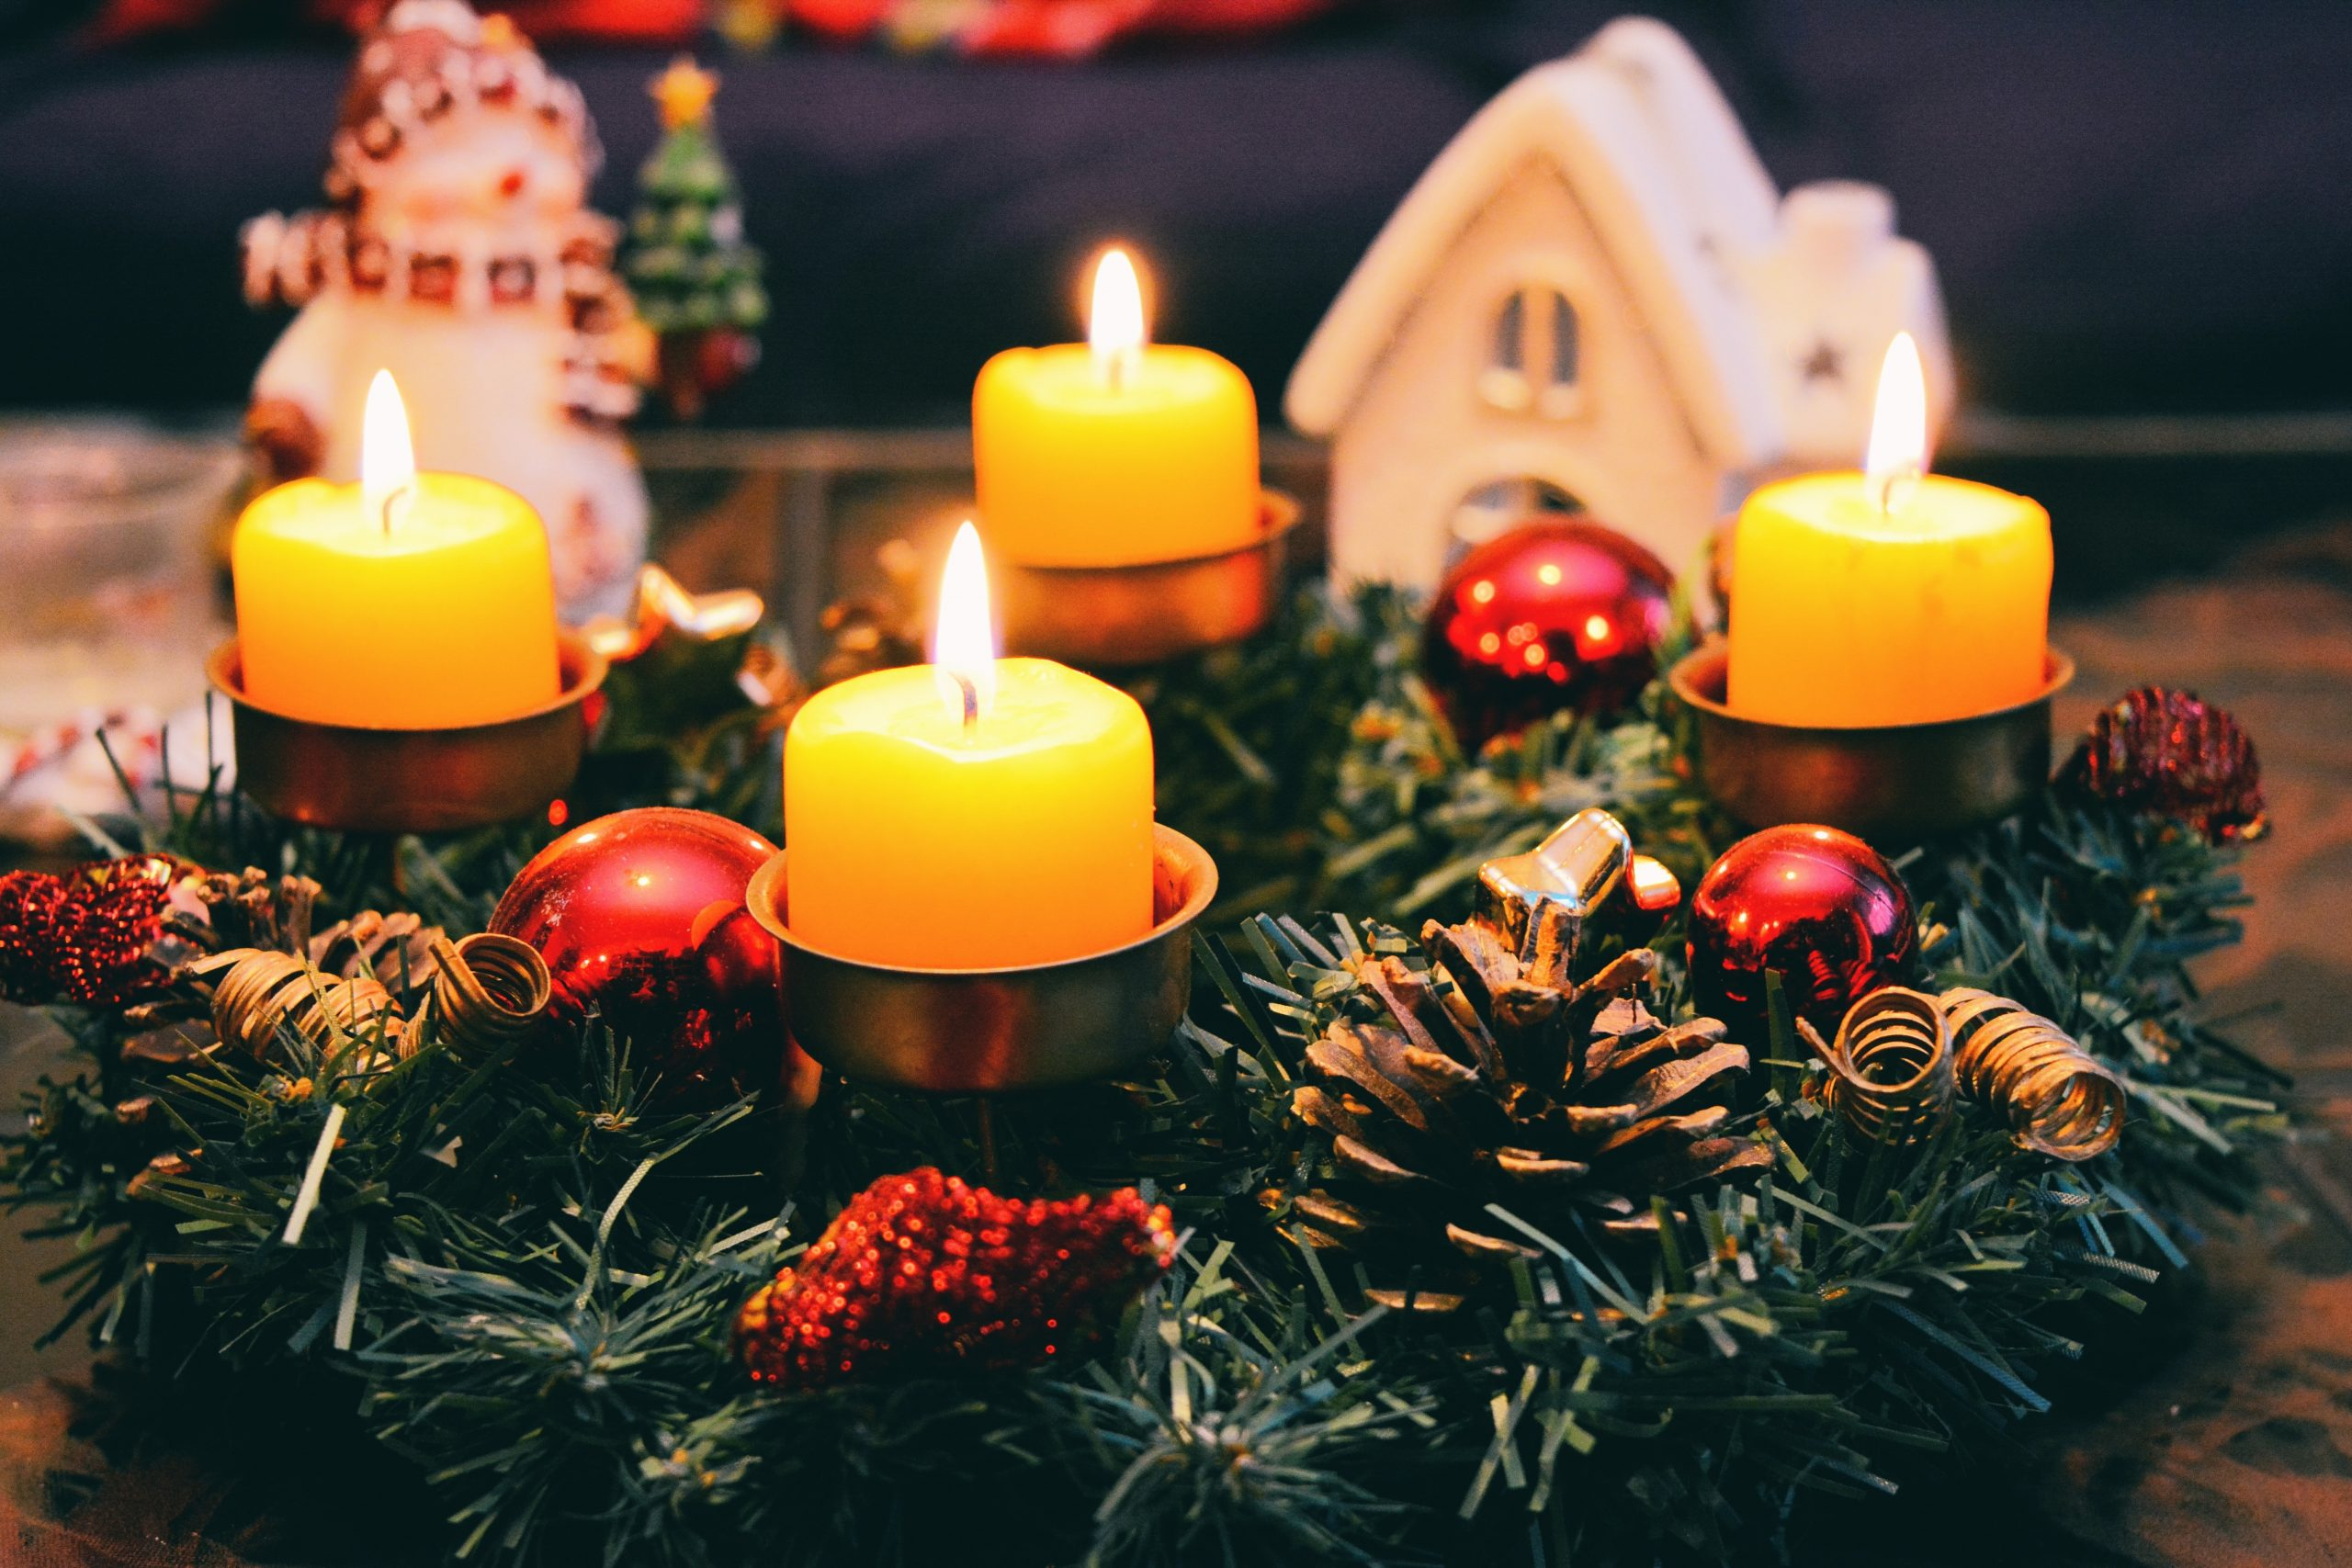 Four yellow candles sitting on top of a Christmas tree decoration featuring pinecones and baubles.